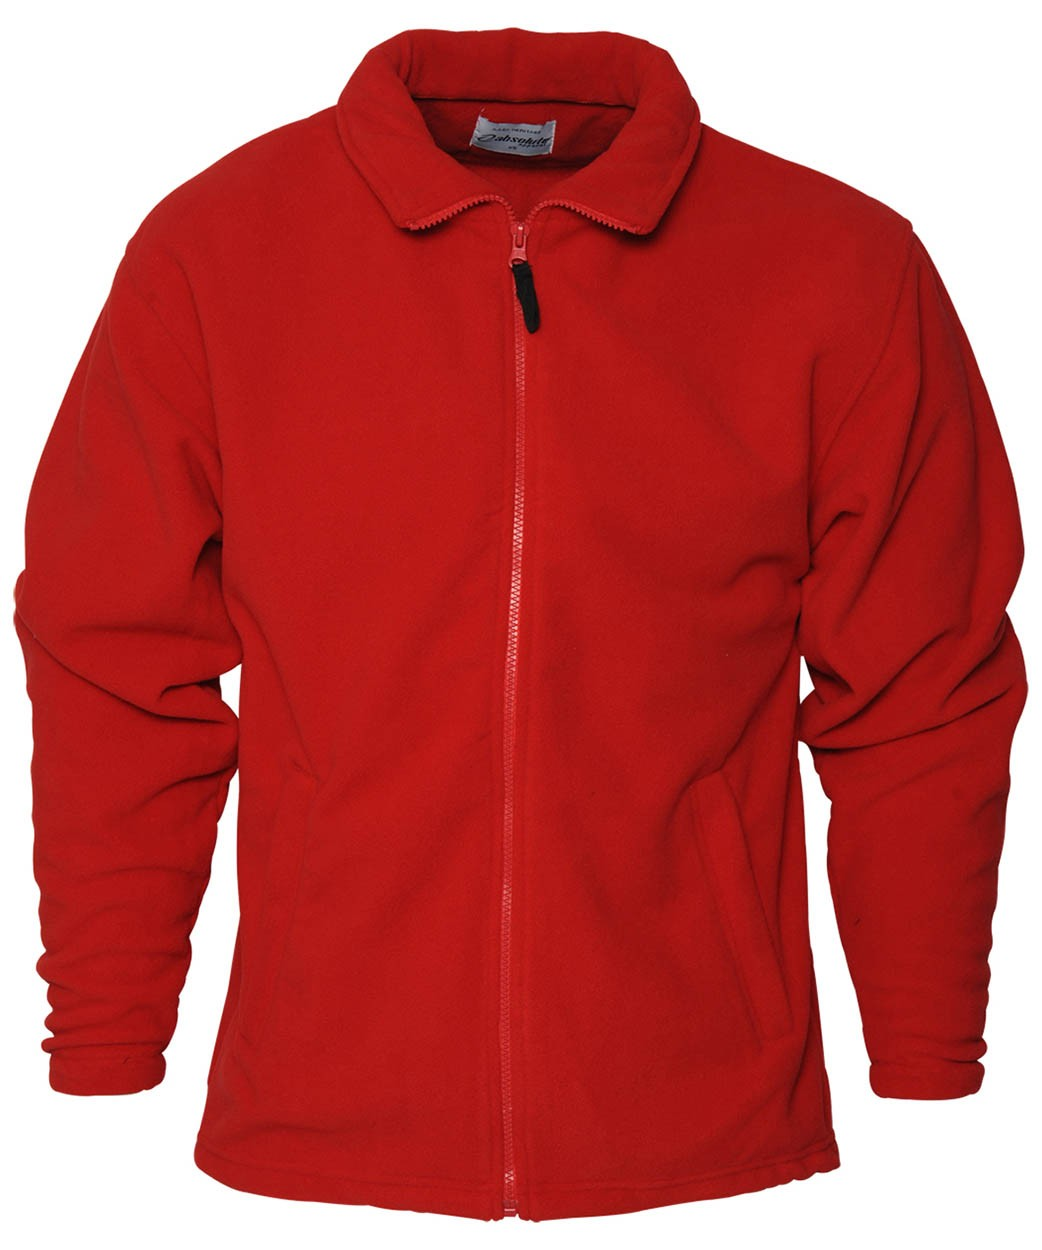 Absolute Apparel AA61 Heritage Full Zip Fleece - Mens / Unisex ...